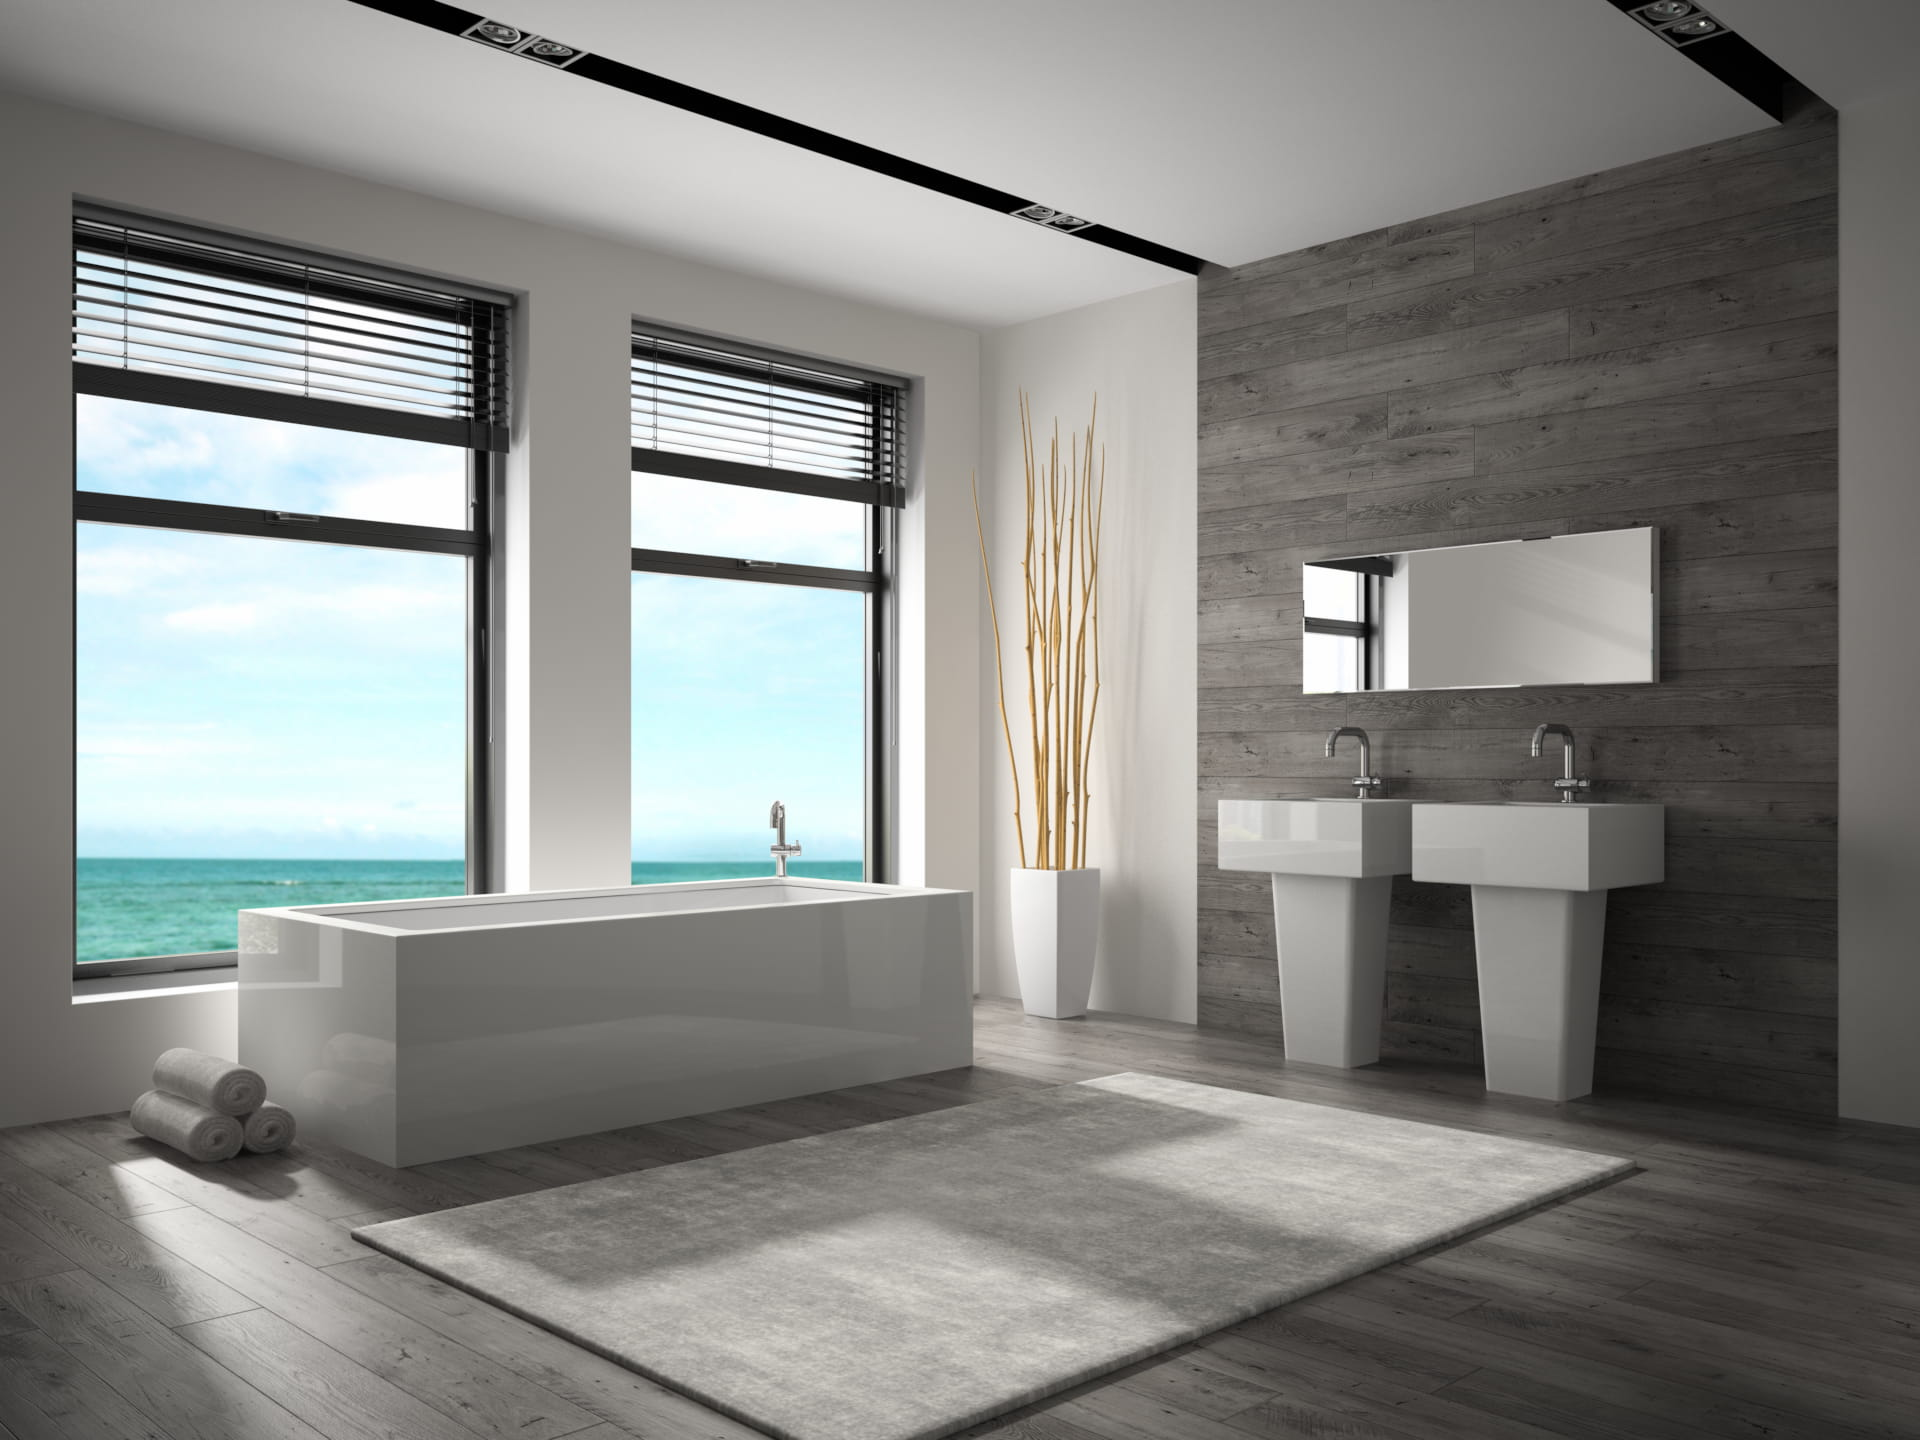 3D rendering of bathroom with sea view